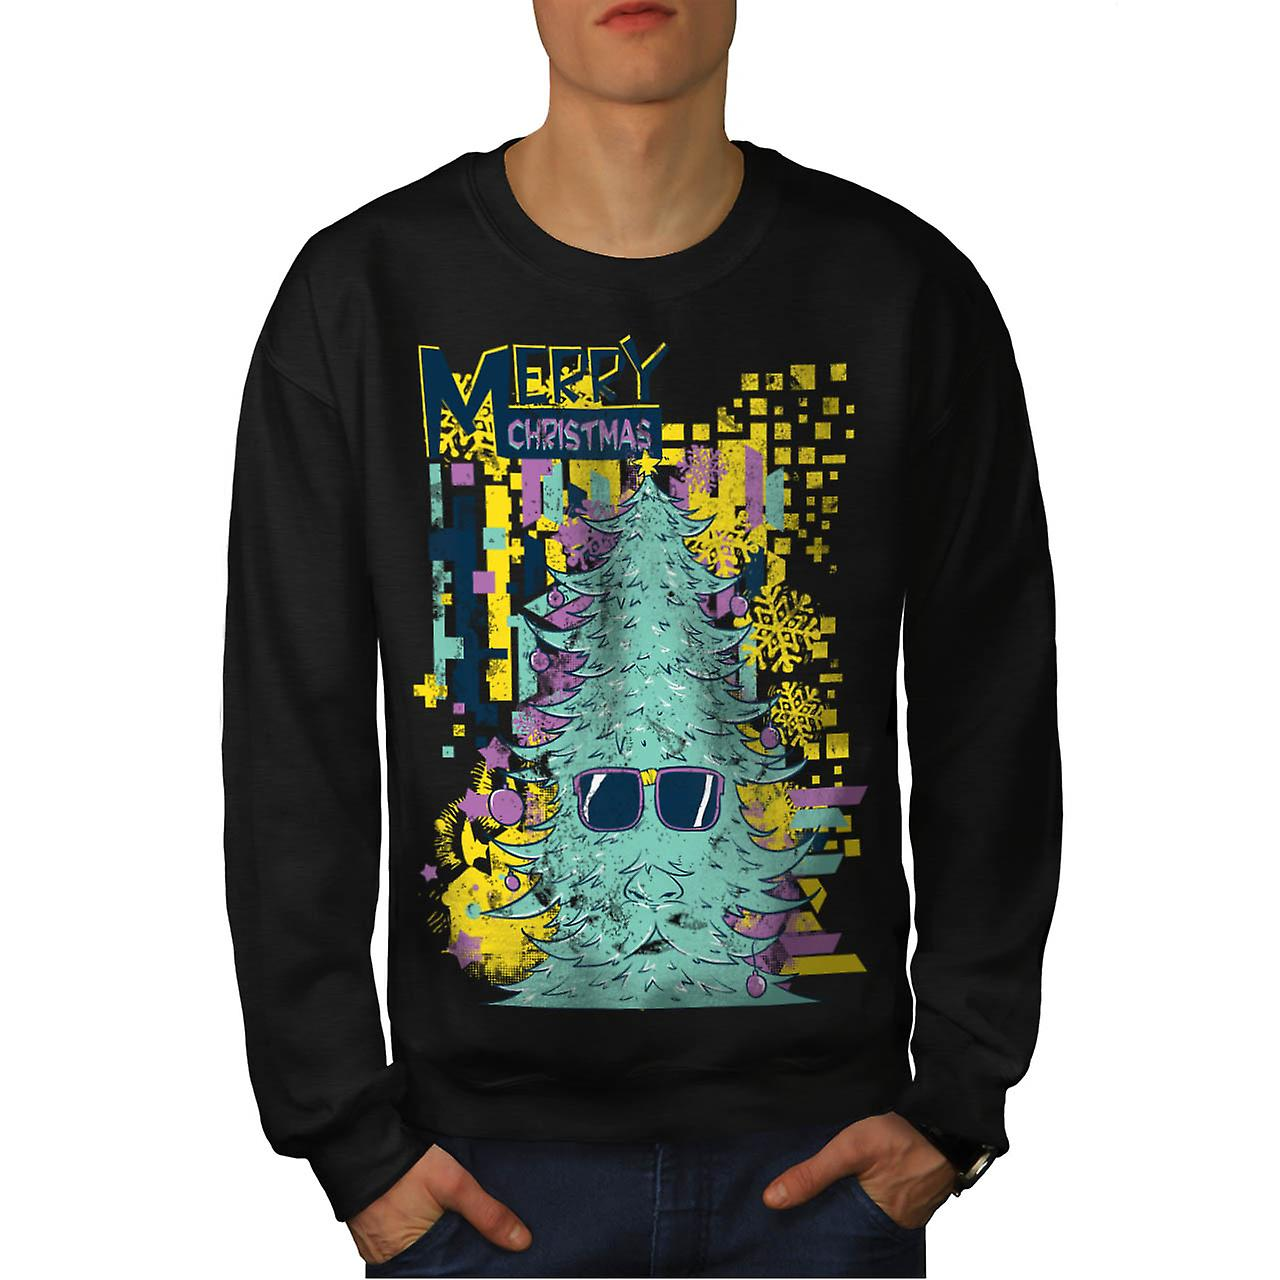 Merry Hipster Christmas Men Black Sweatshirt | Wellcoda